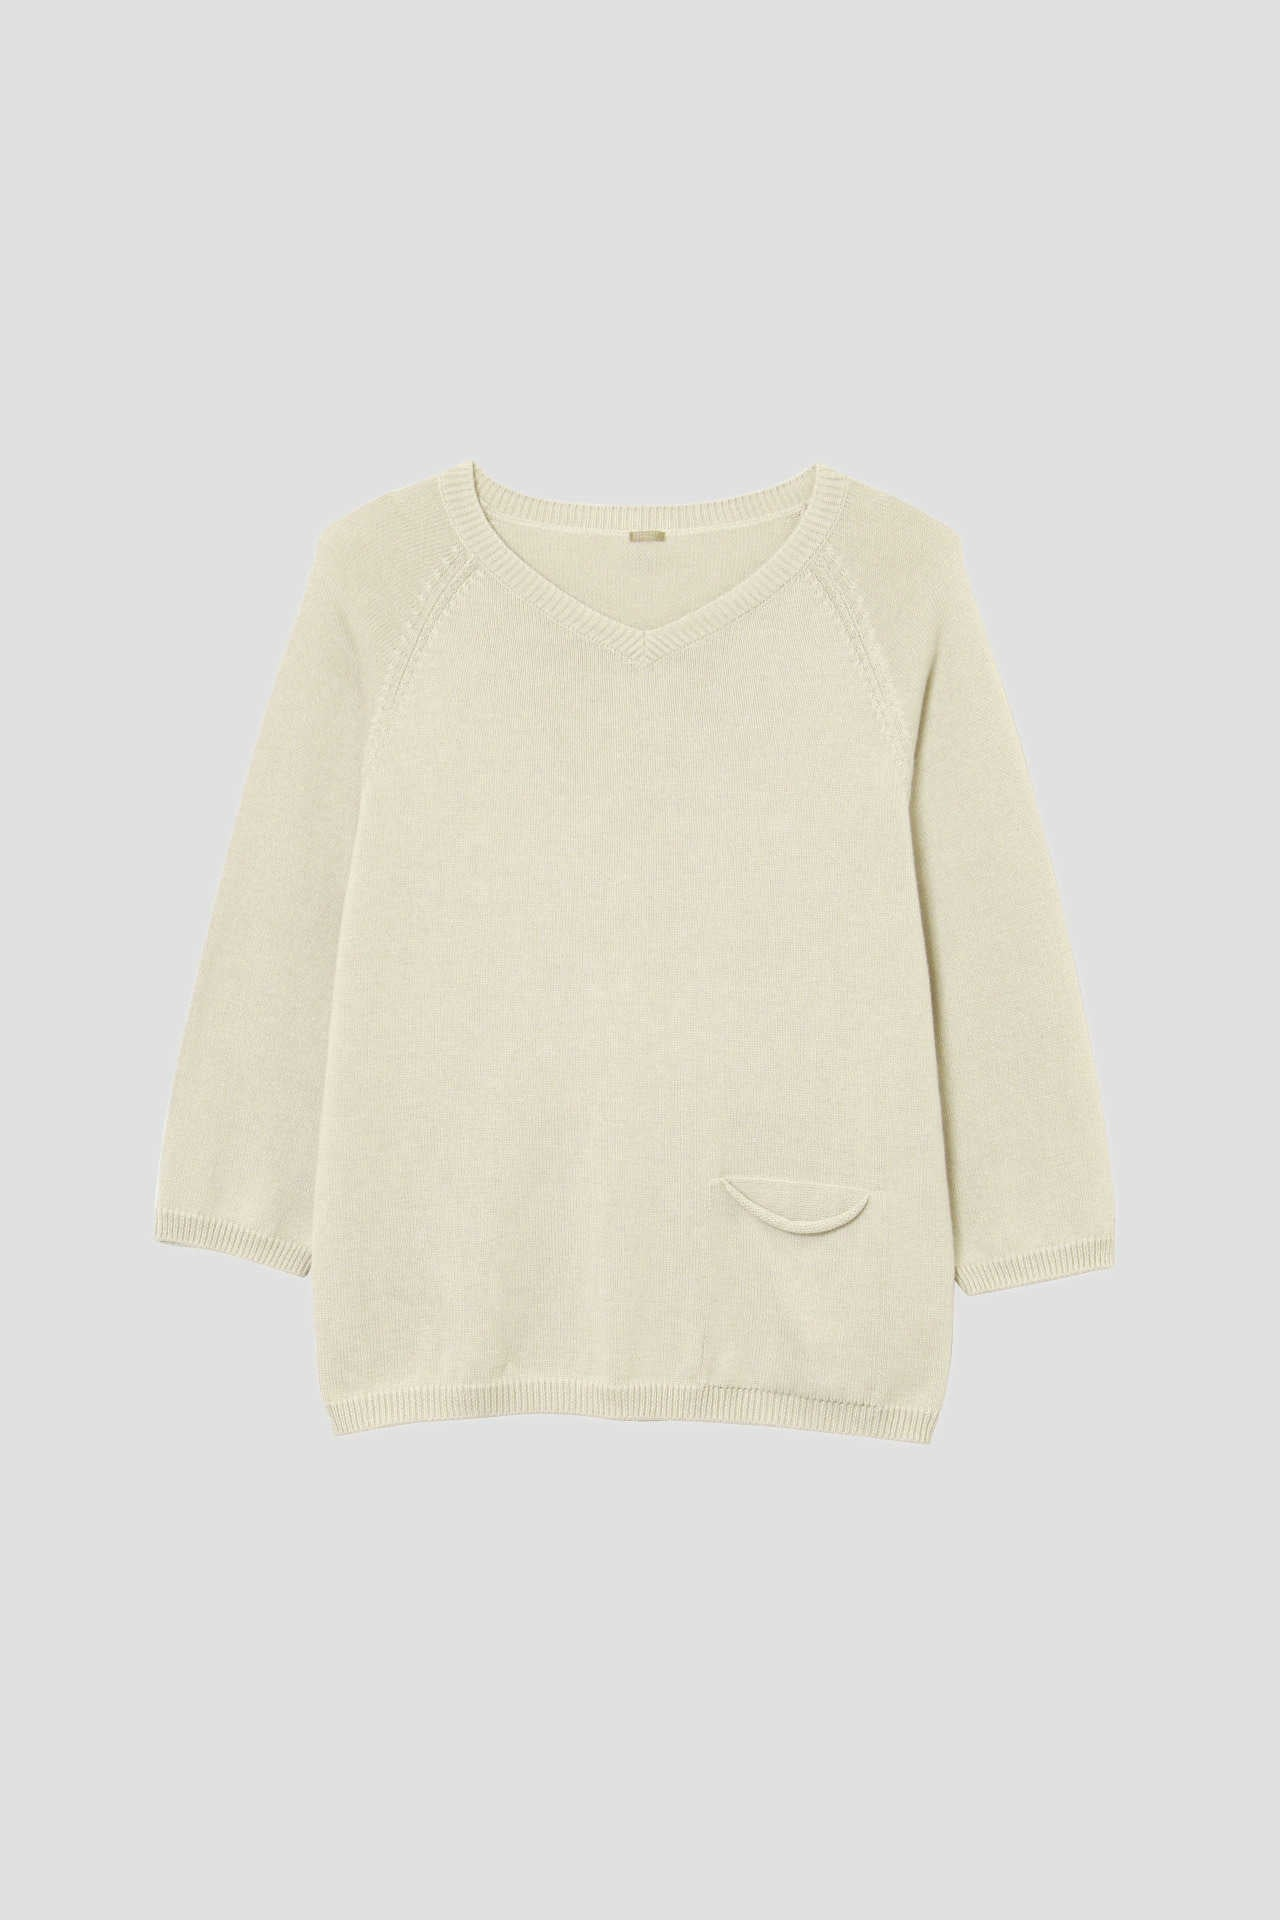 COTTON JUMPER1